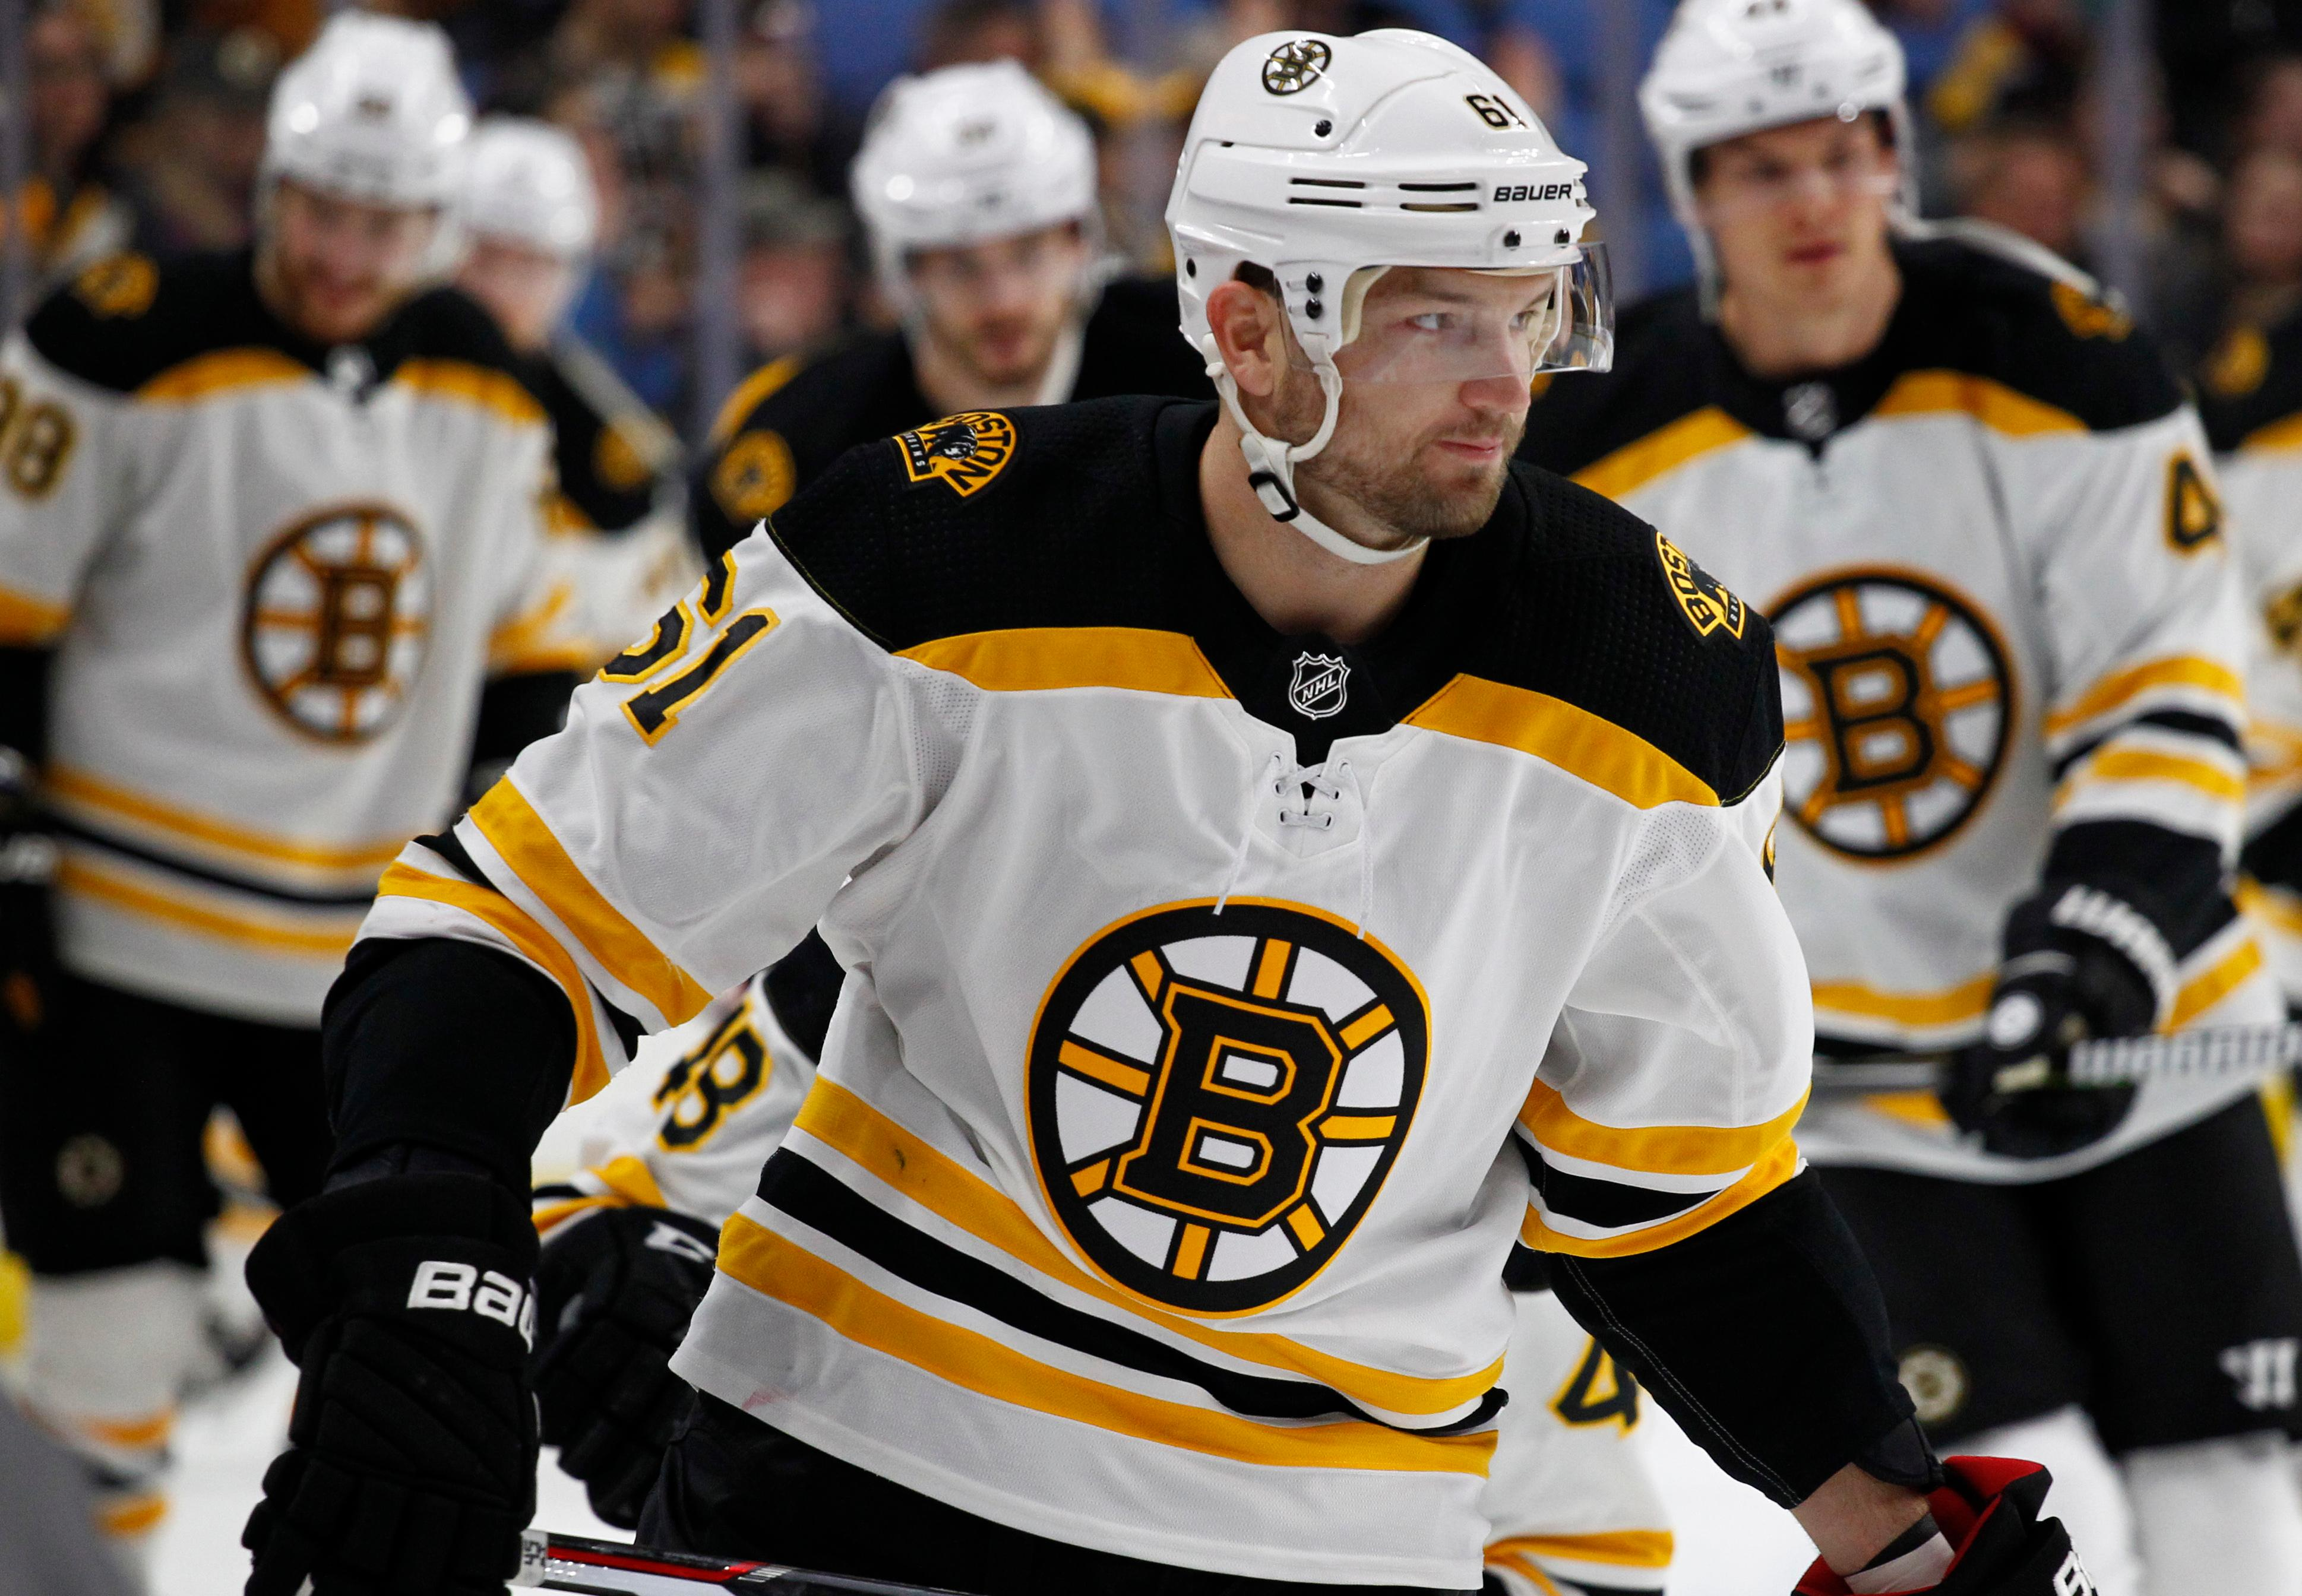 Boston Bruins forward Rick Nash (61) skates during warm-ups prior to the first period of an NHL hockey game against the Buffalo Sabres, Sunday, Feb. 25, 2018, in Buffalo, N.Y. (AP Photo/Jeffrey T. Barnes)